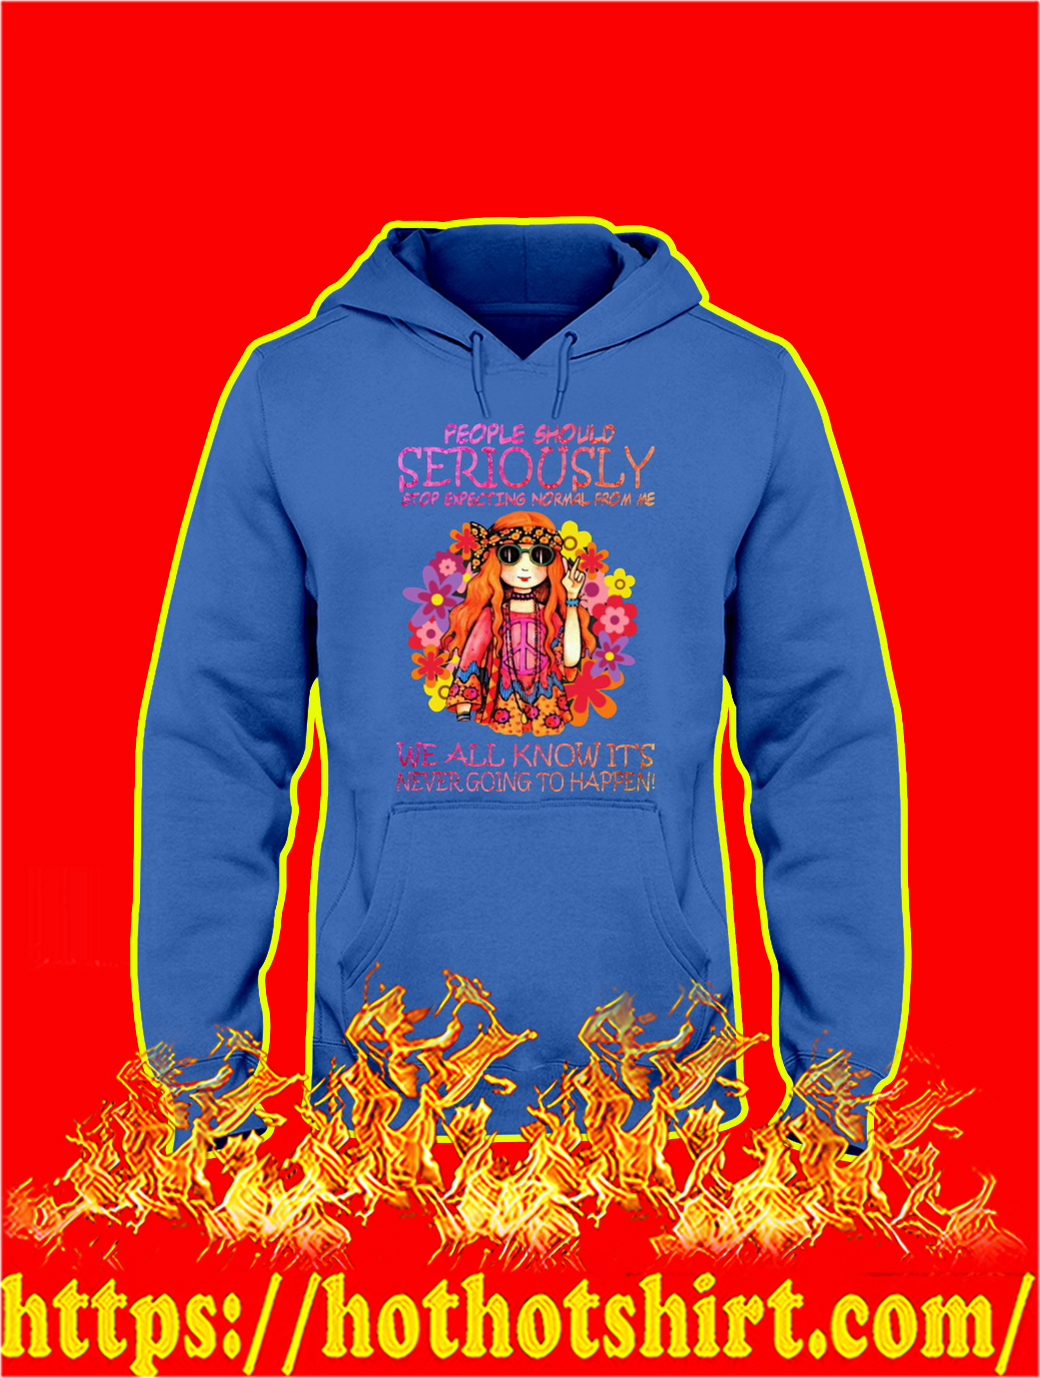 Hippie Girl People Should Seriously Stop Expecting Normal From Me hoodie